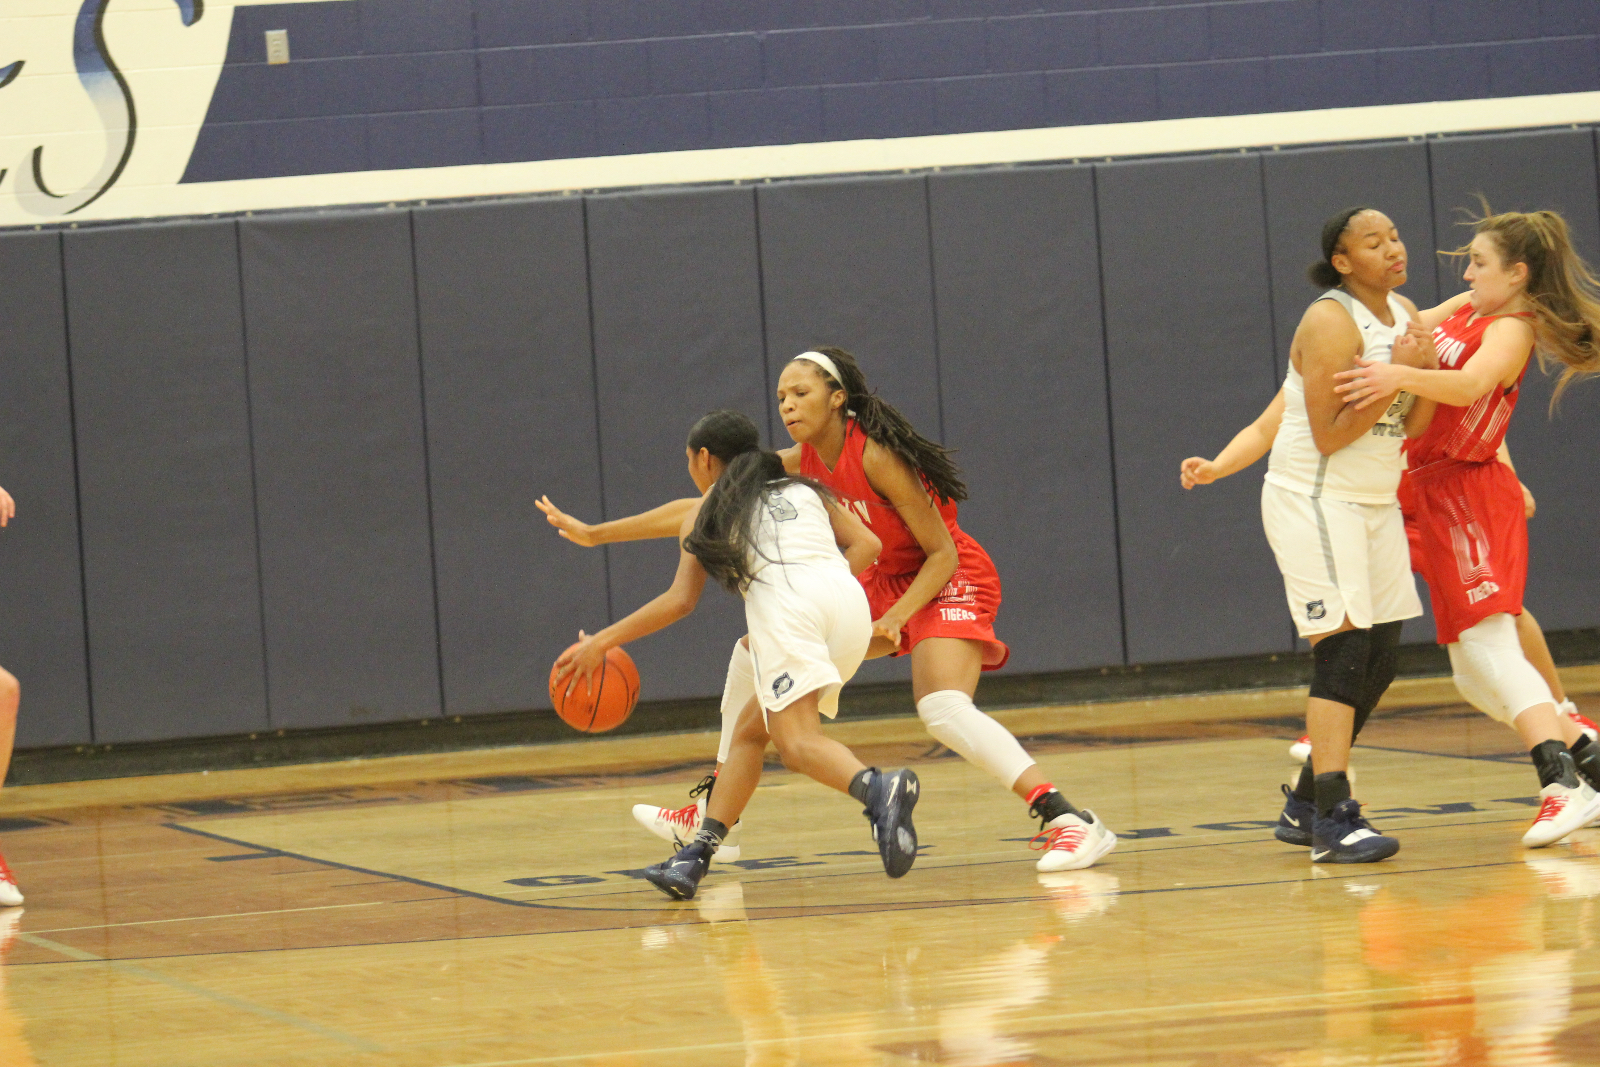 Lady Tigers tough on defense again as they double up Shoemaker, 54-27